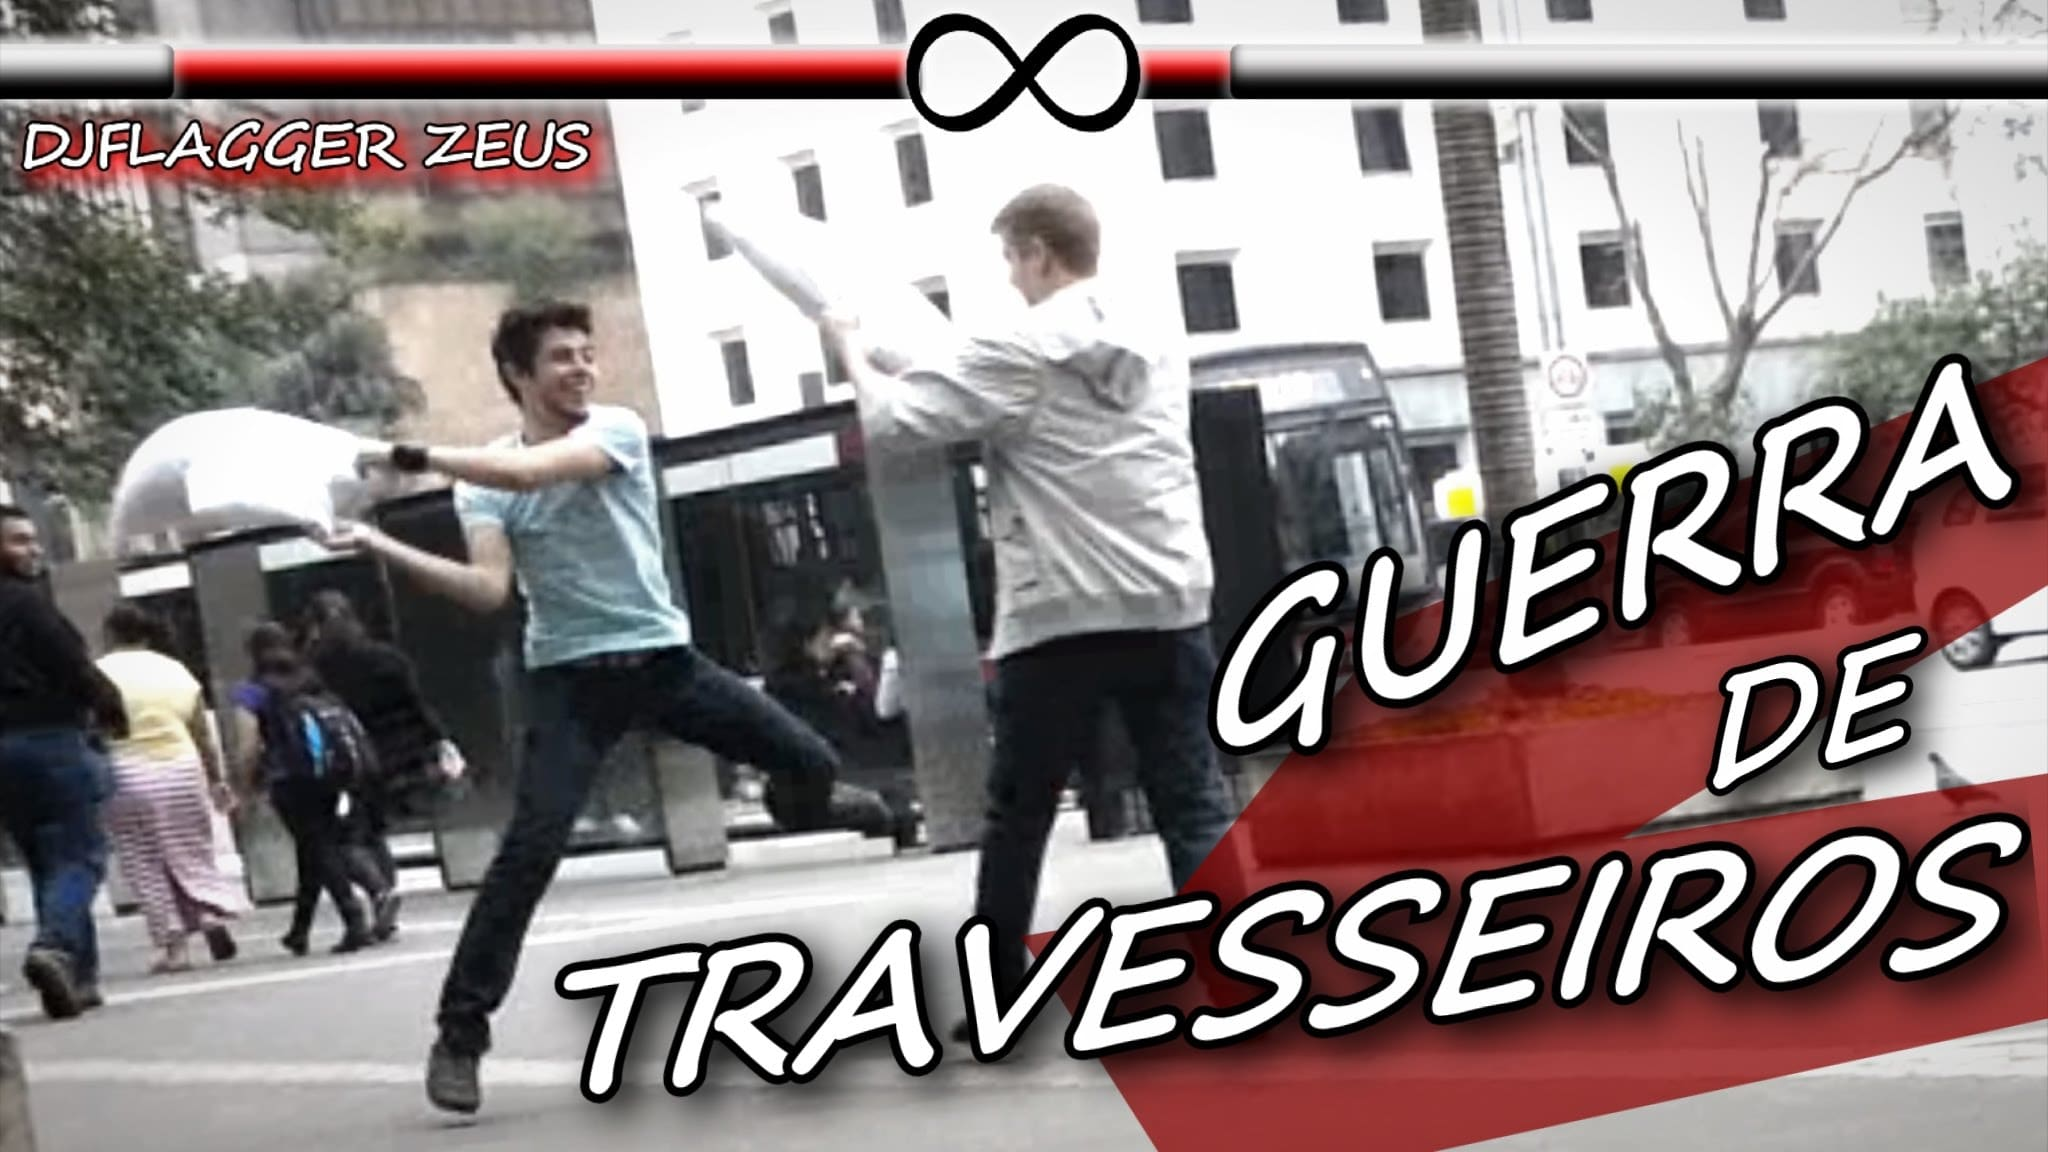 Guerra de Travesseiros (Pillow Fight Prank) 1